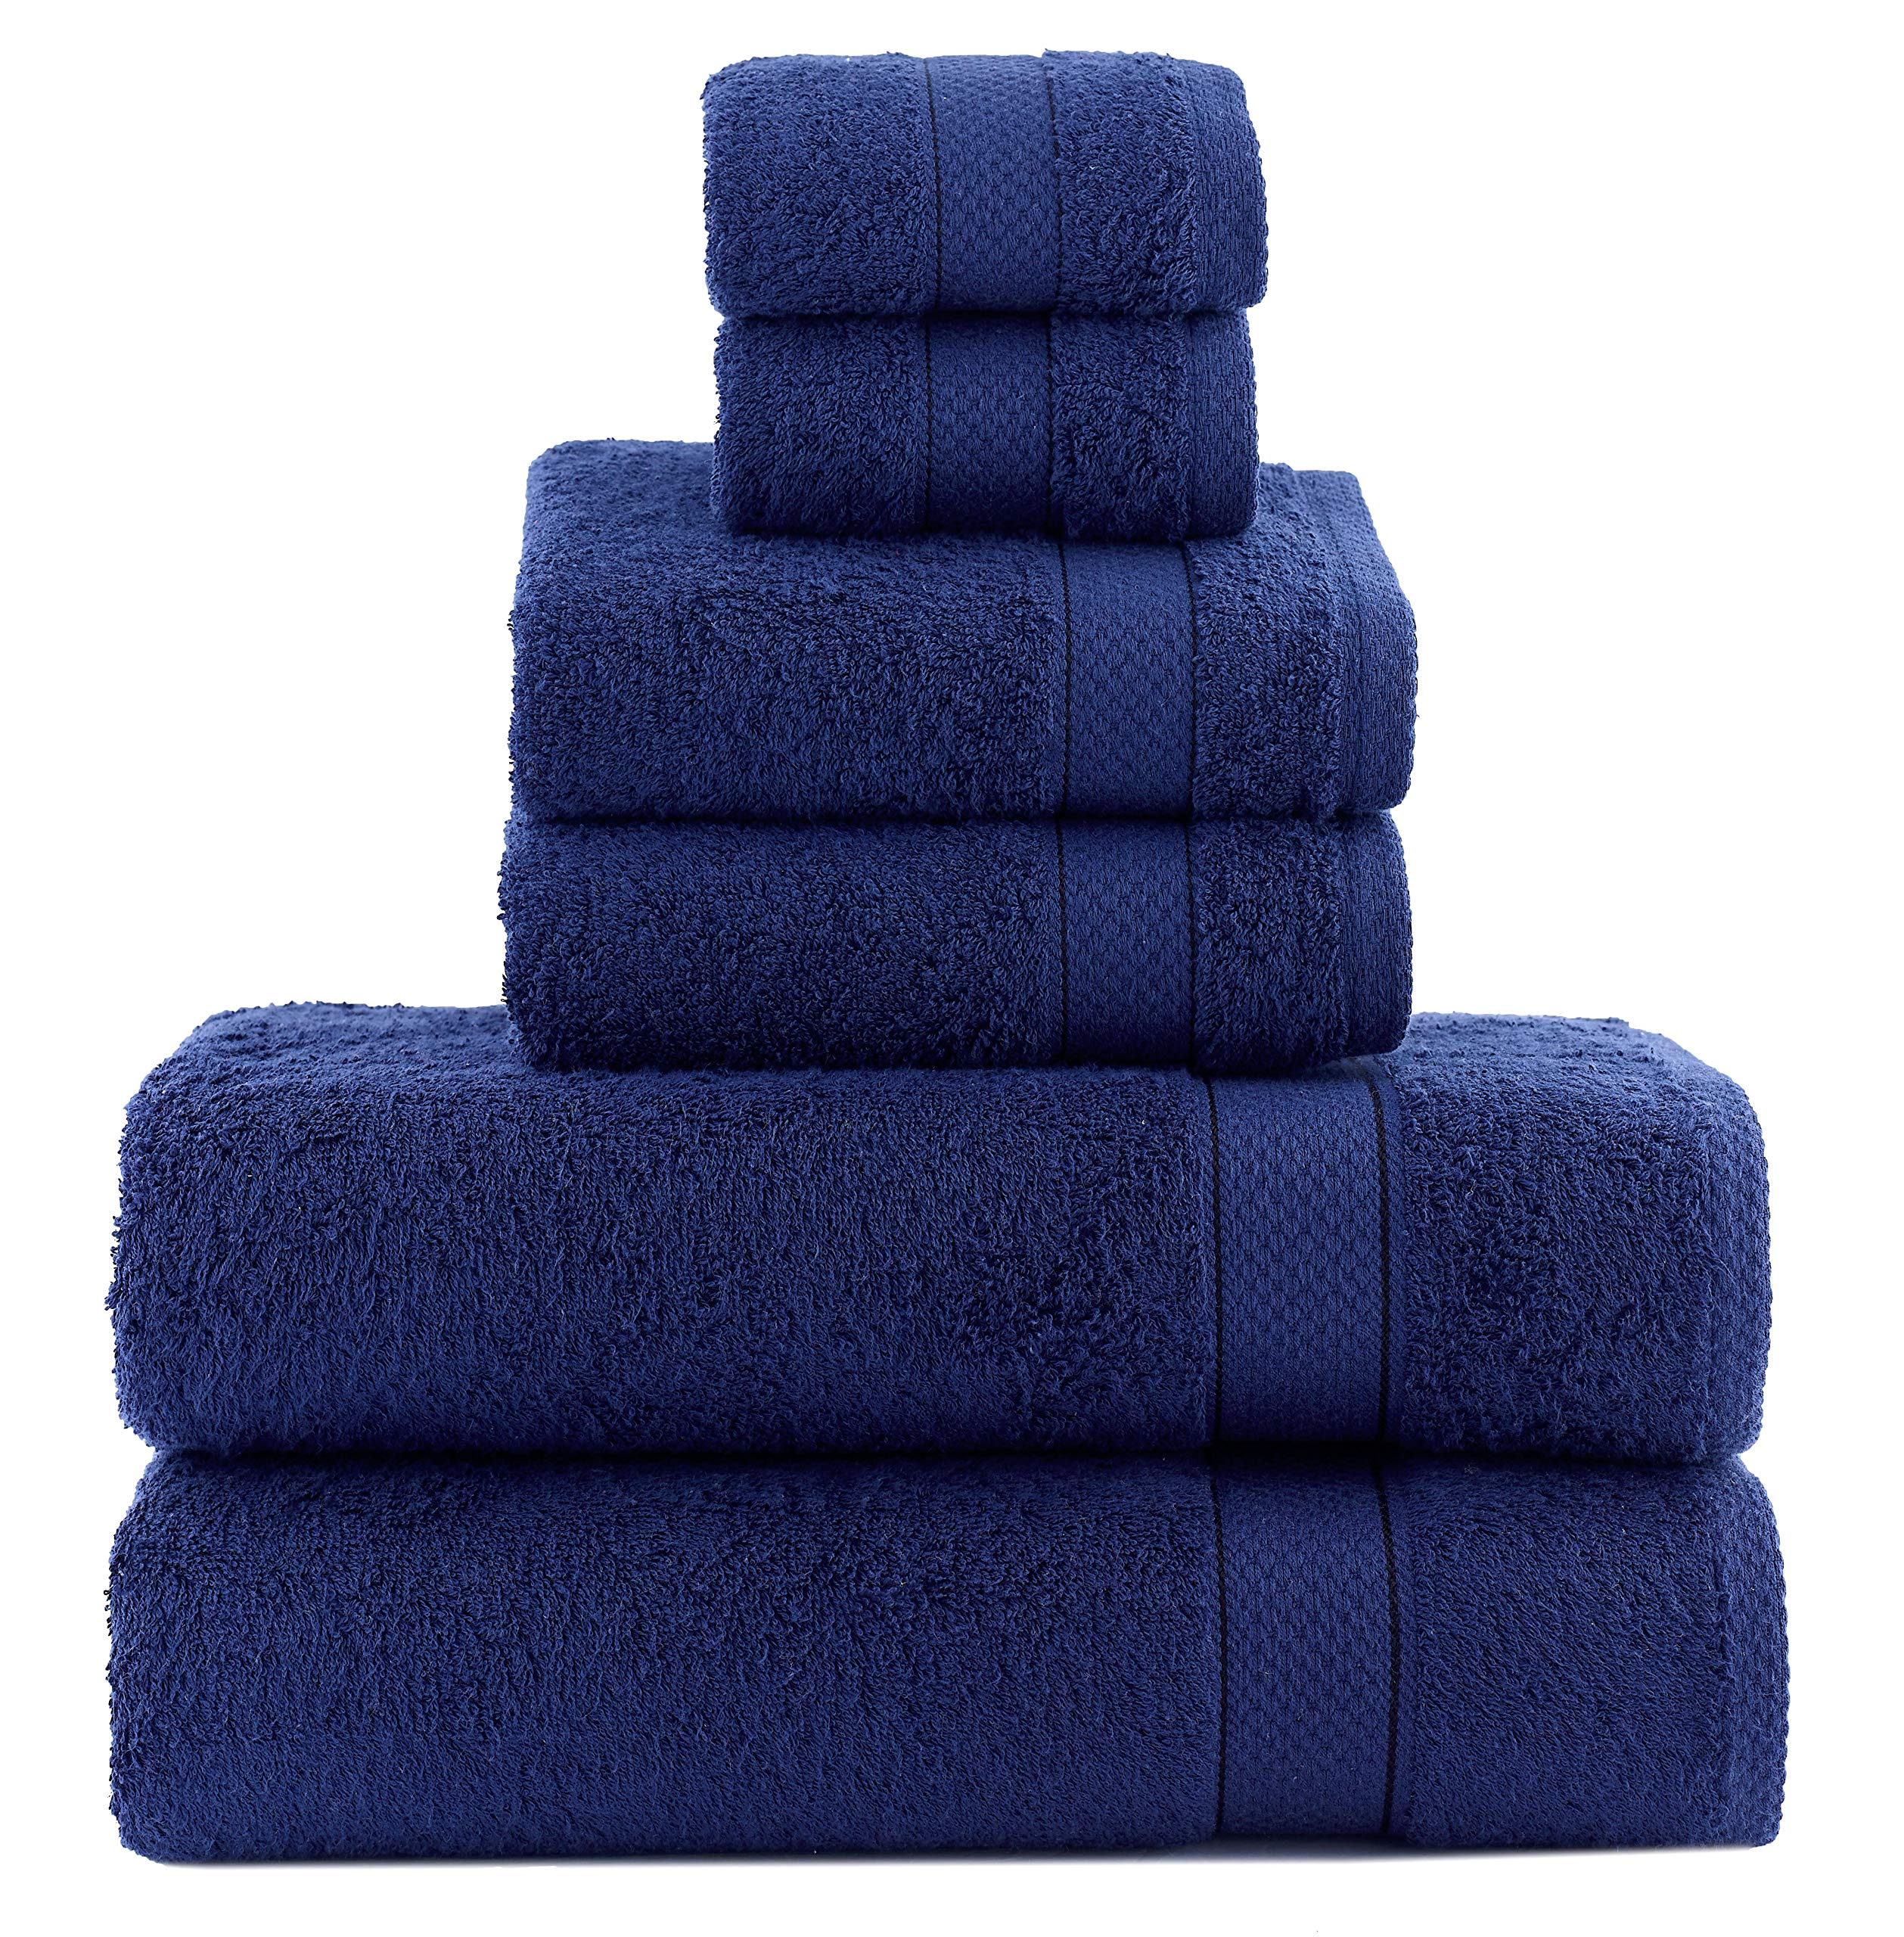 ixirhome Turkish Towel Set 6 Piece,100% Cotton, 2 Bath Towels, 2 Hand Towels 2 Washcloths, Machine Washable, Hotel Quality, Super Soft Highly Absorbent (NAVY BLUE)